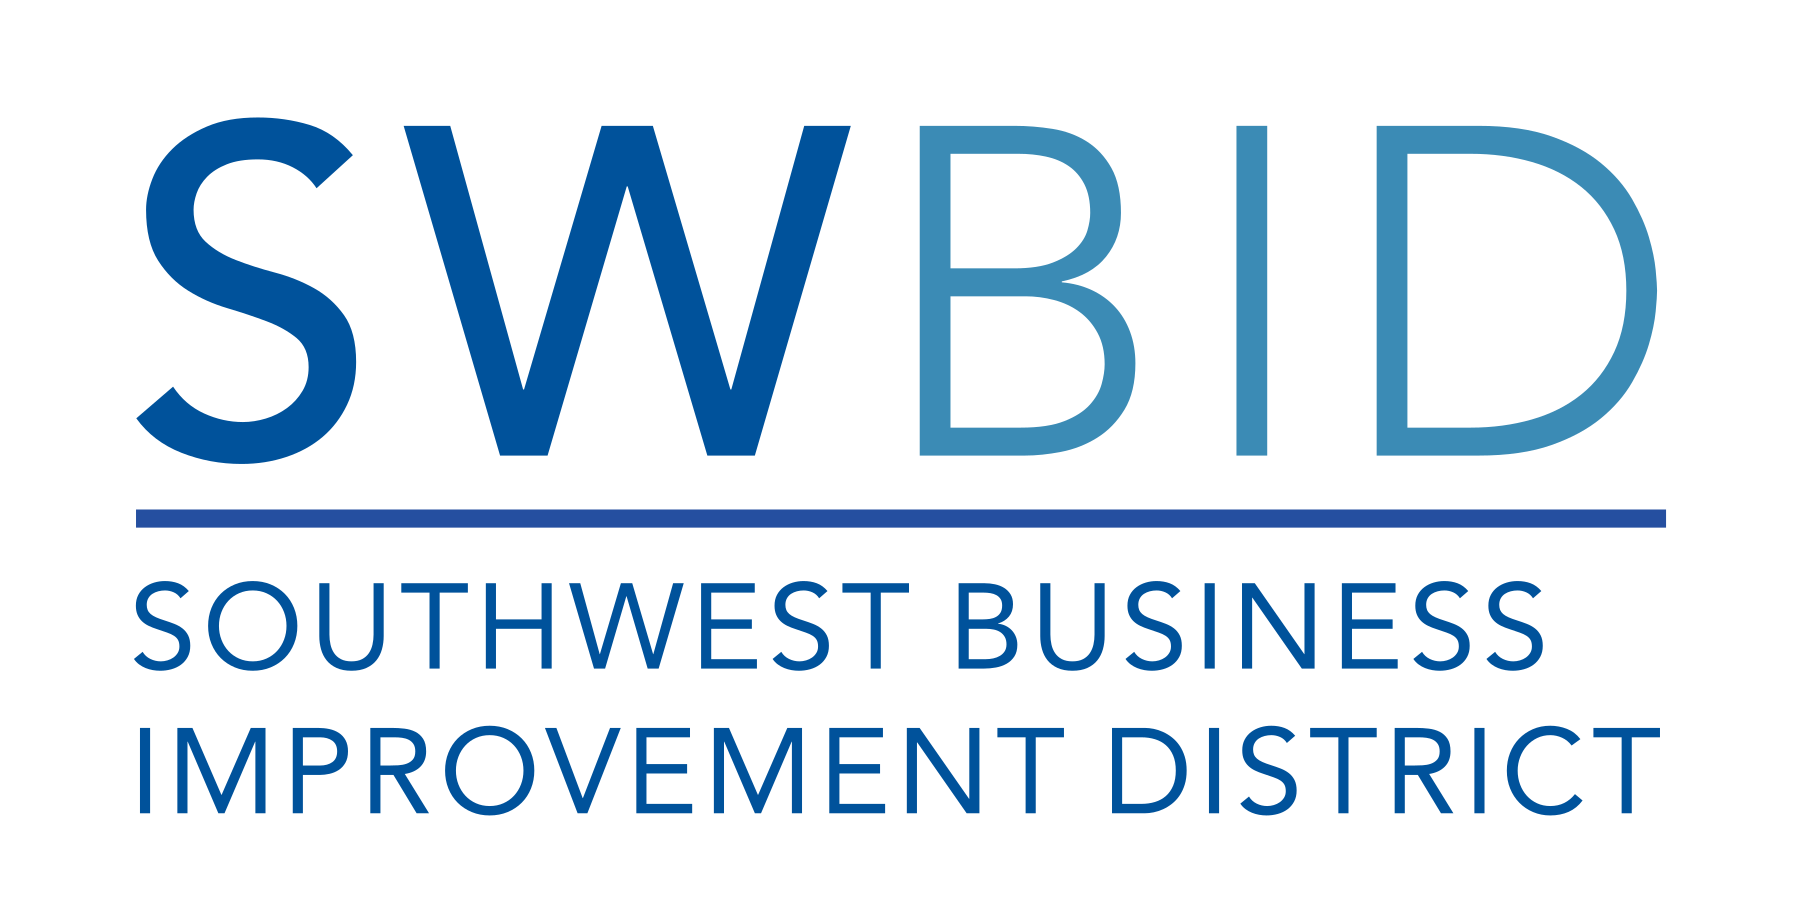 SWBID Complete Logo_Color_Opaque Background_(1800x900).png